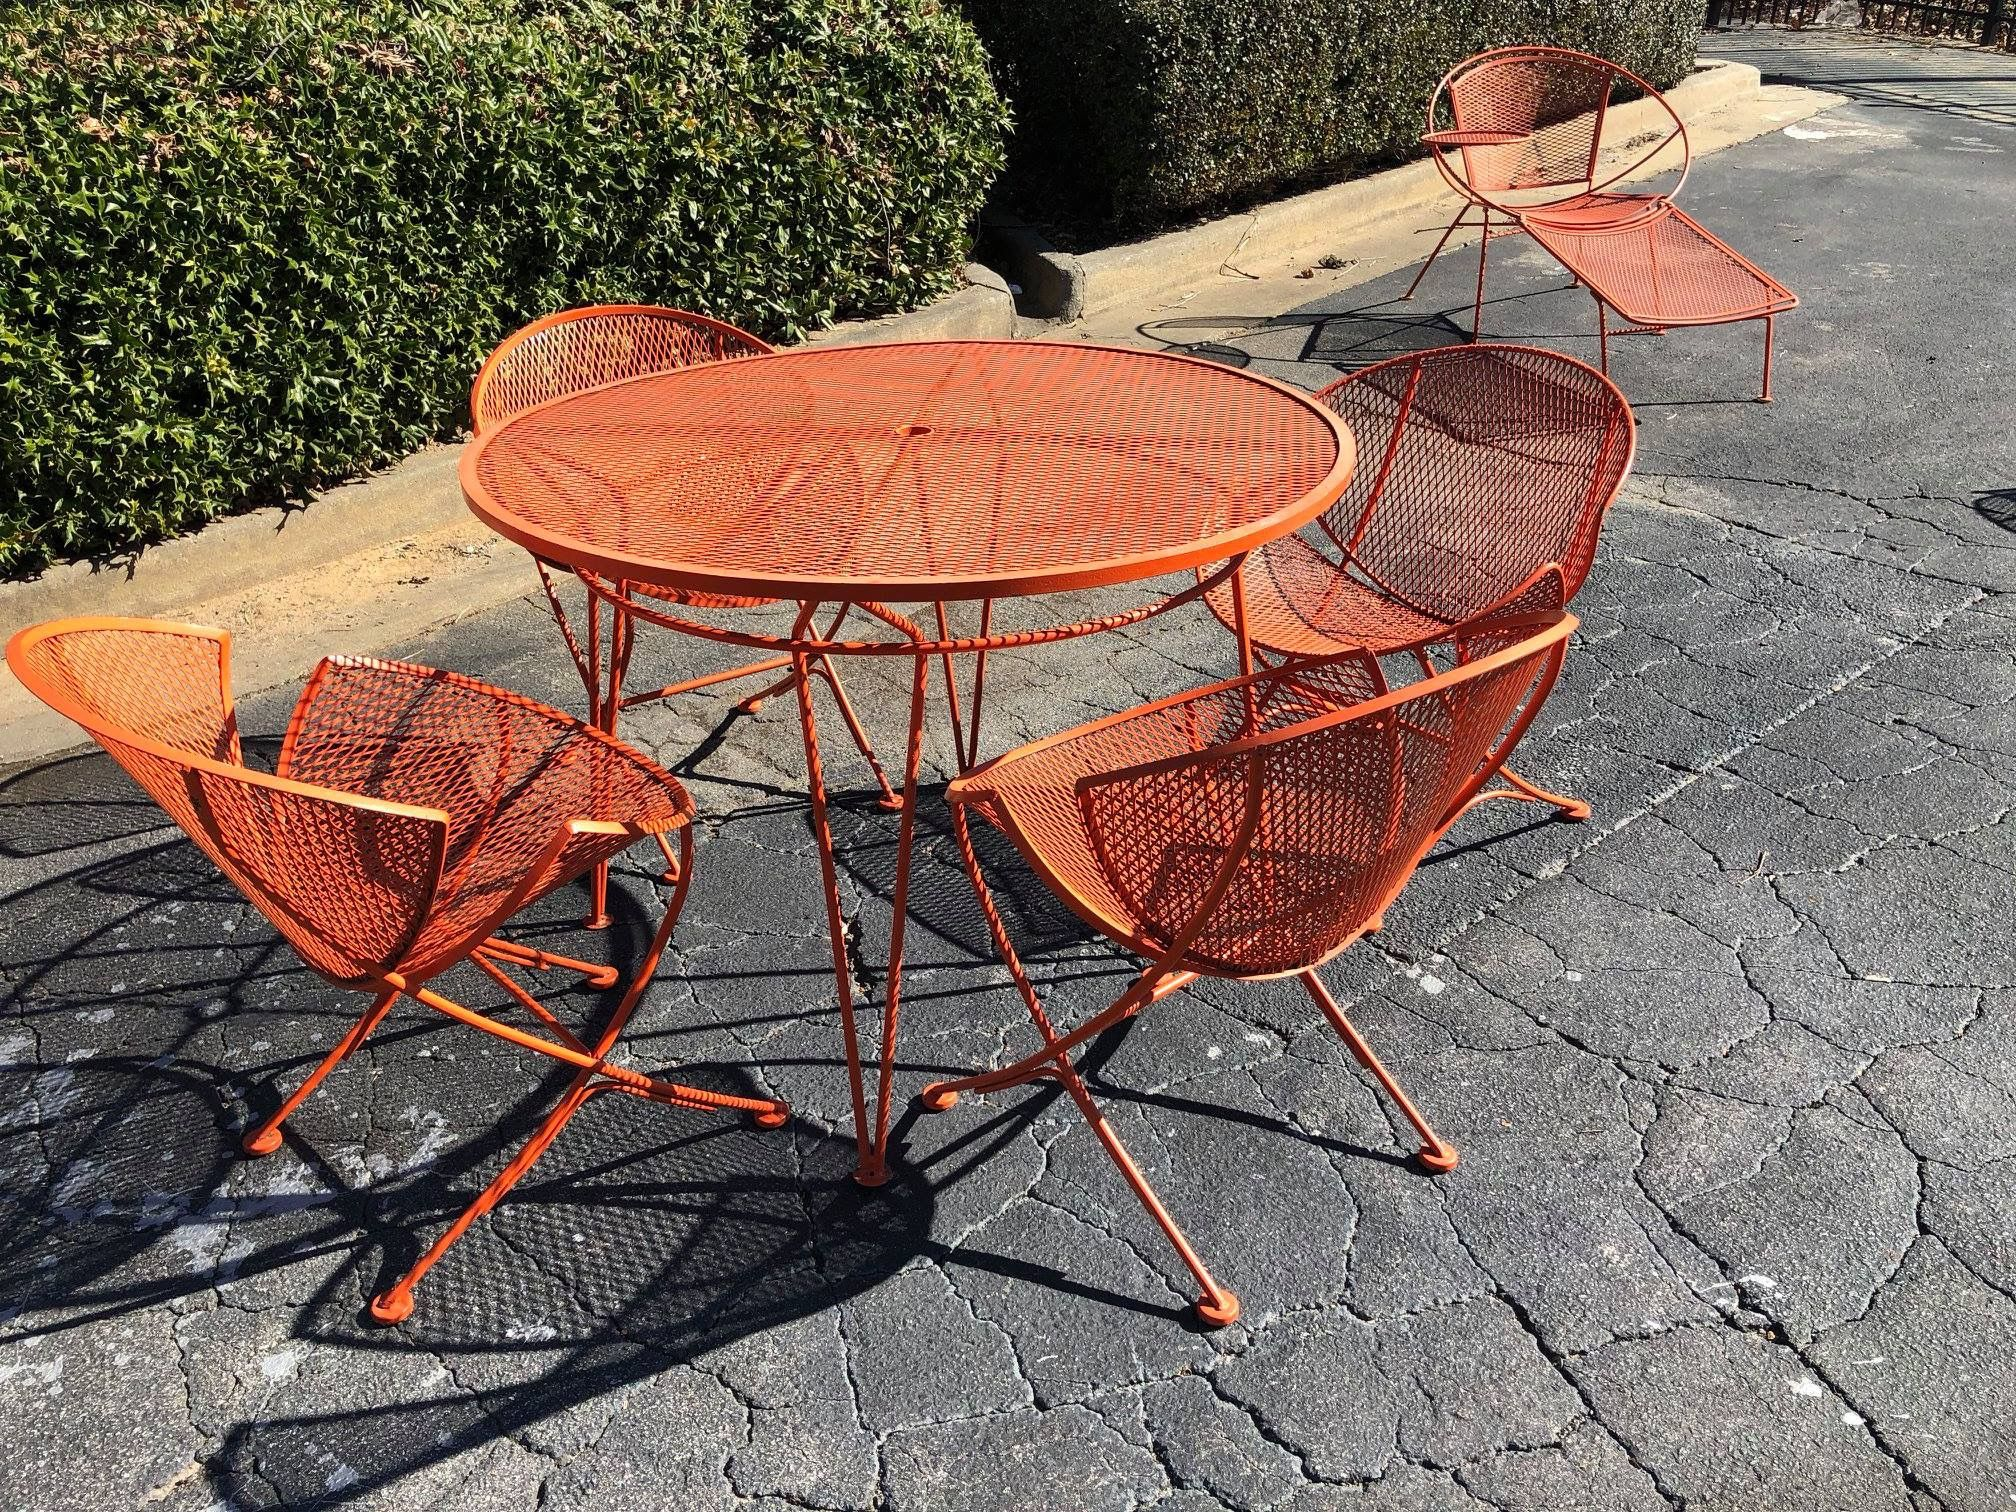 Pin By Thejovialshow On Midcentury Mid Century Modern Outdoor Furniture Vintage Furniture Makeover Mid Century Modern Interiors